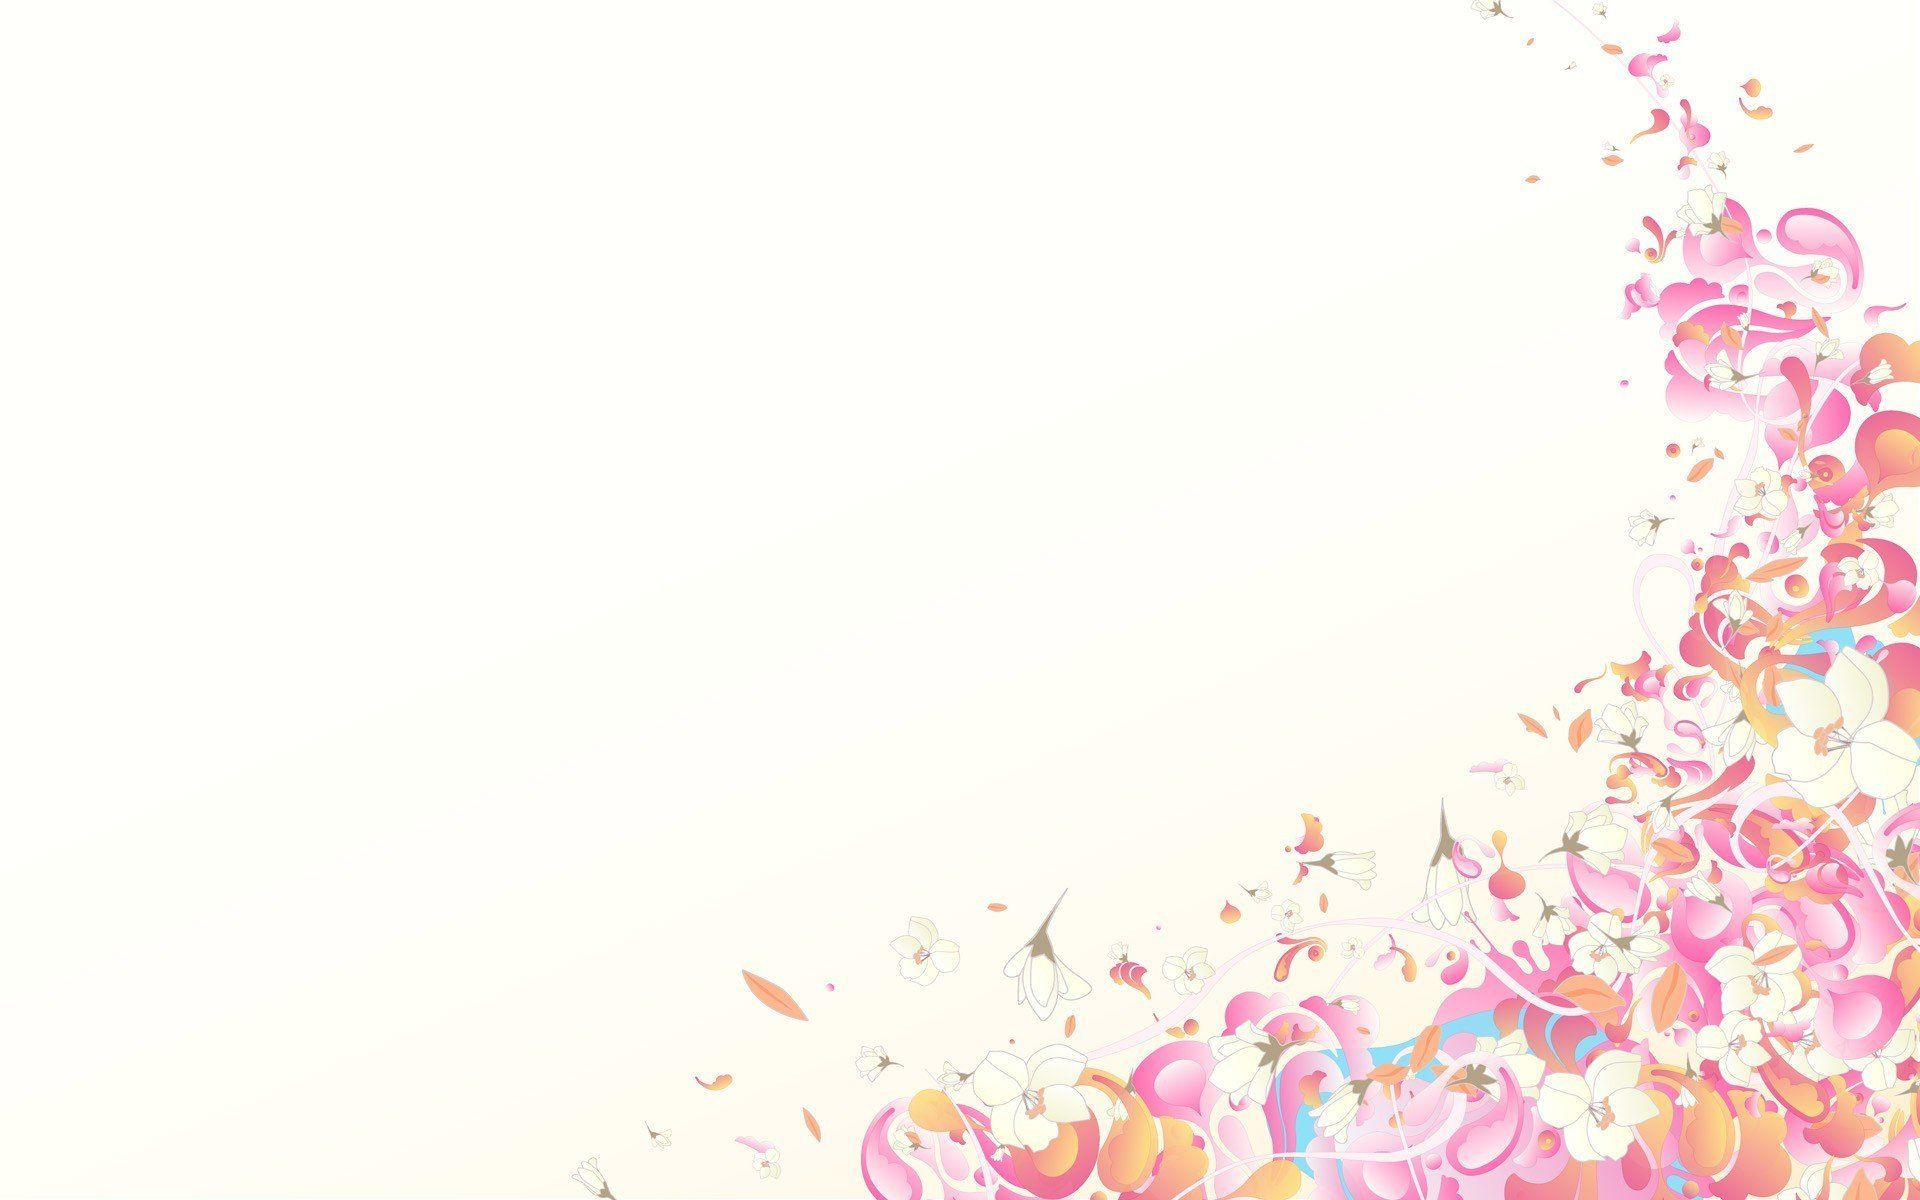 Pastel floral wallpaper widescreen kjf 1 in 2019 pastel wallpaper pink wallpaper - Pastel background hd ...